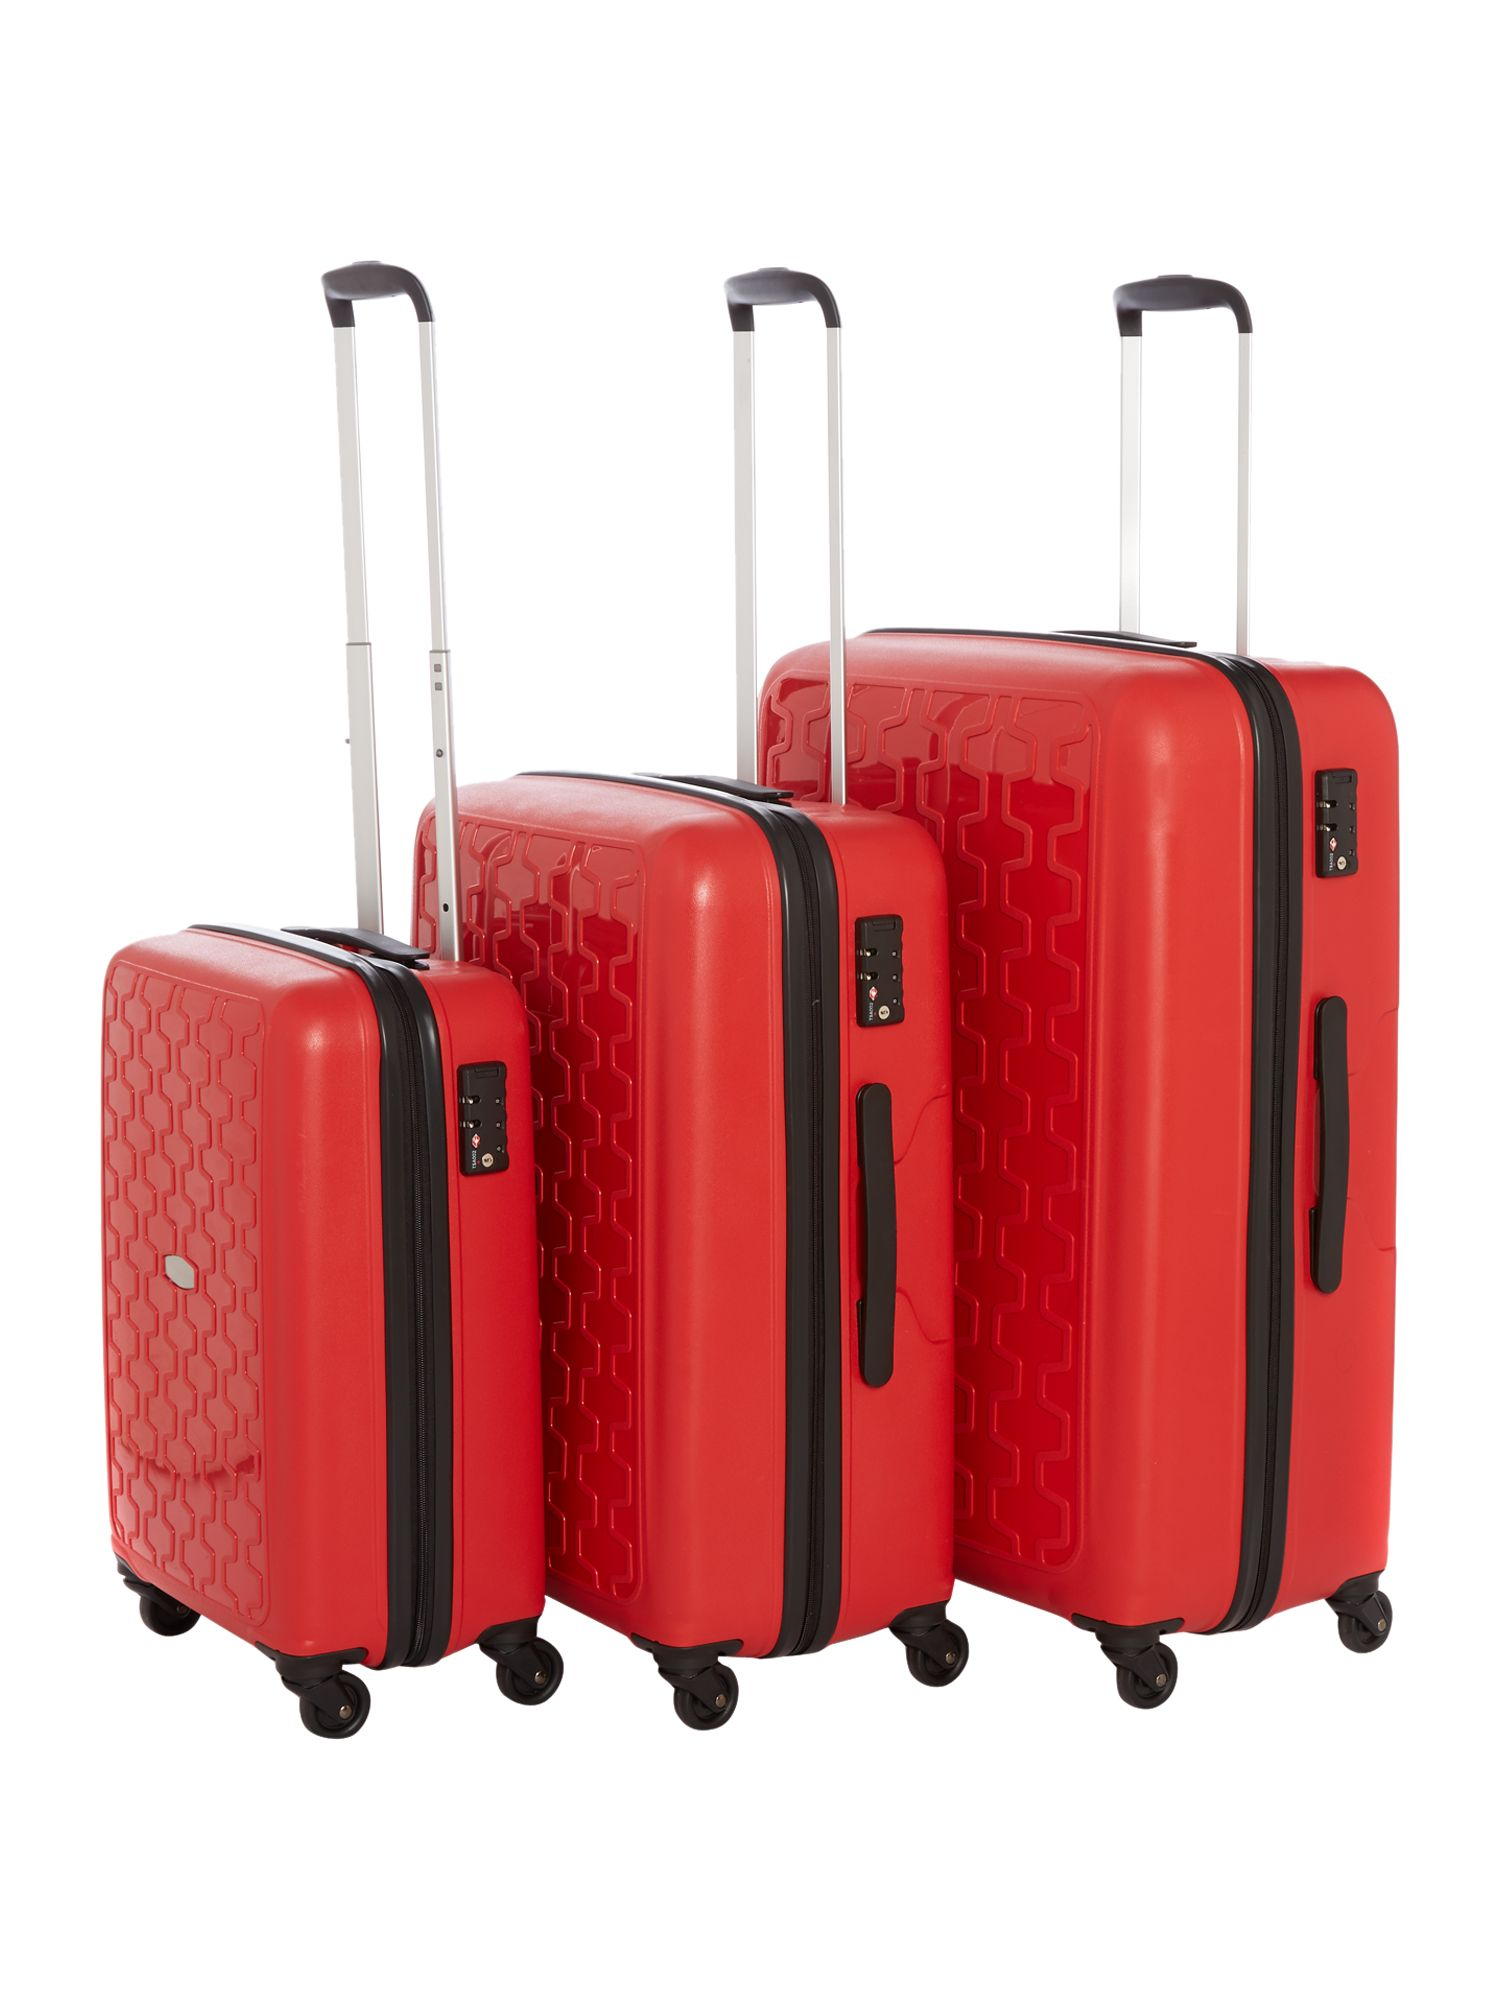 Moblite red luggage range